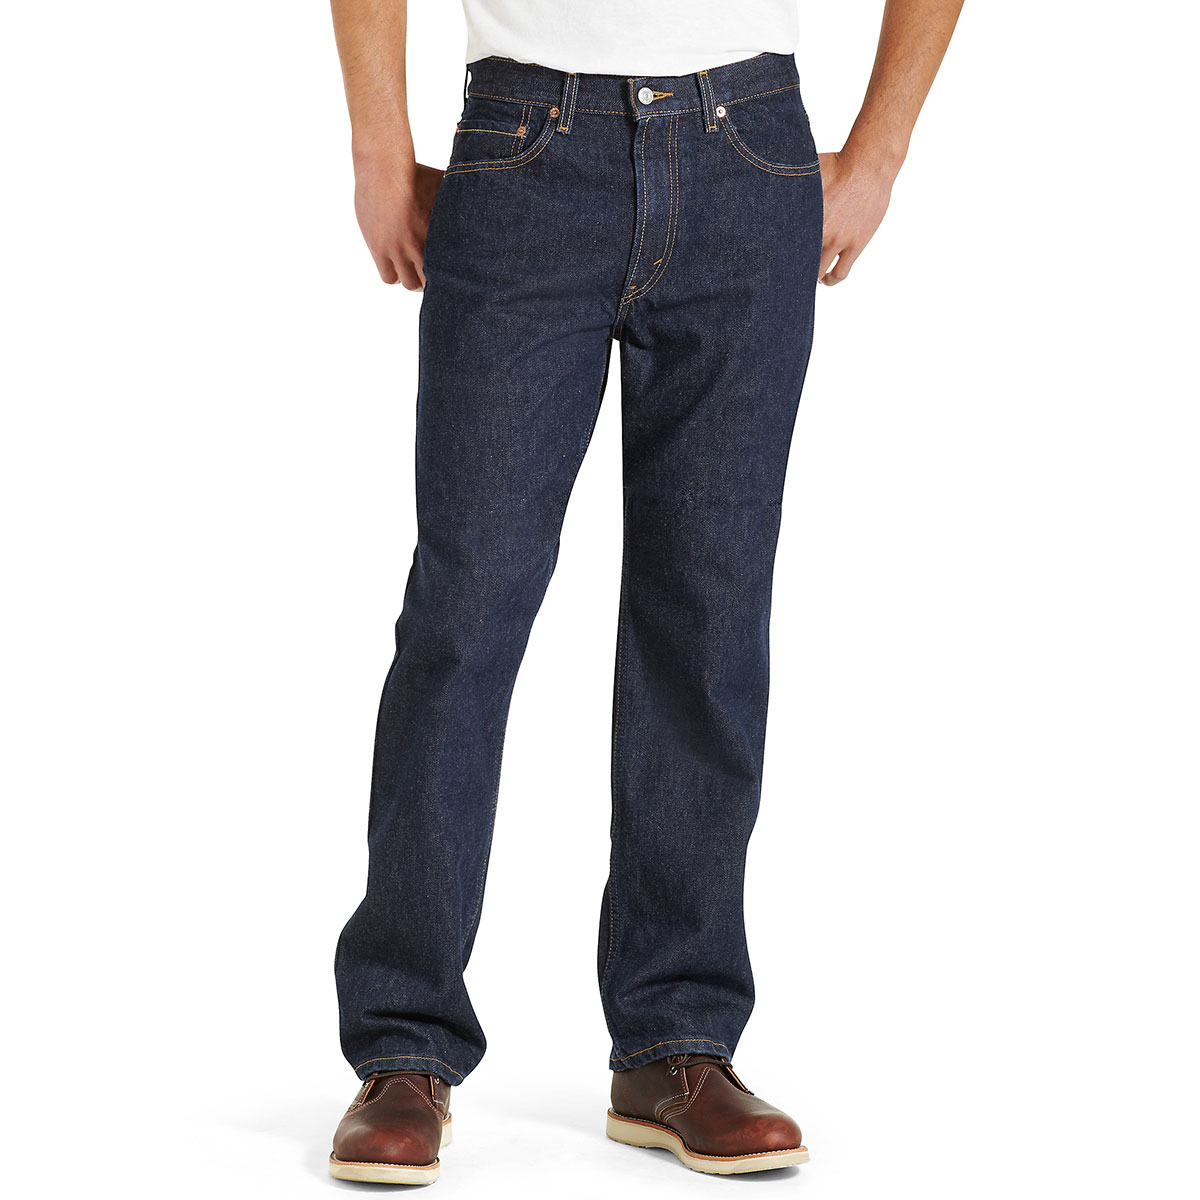 Levi's Men's 505 Regular Fit Jeans - Blue, 34/29